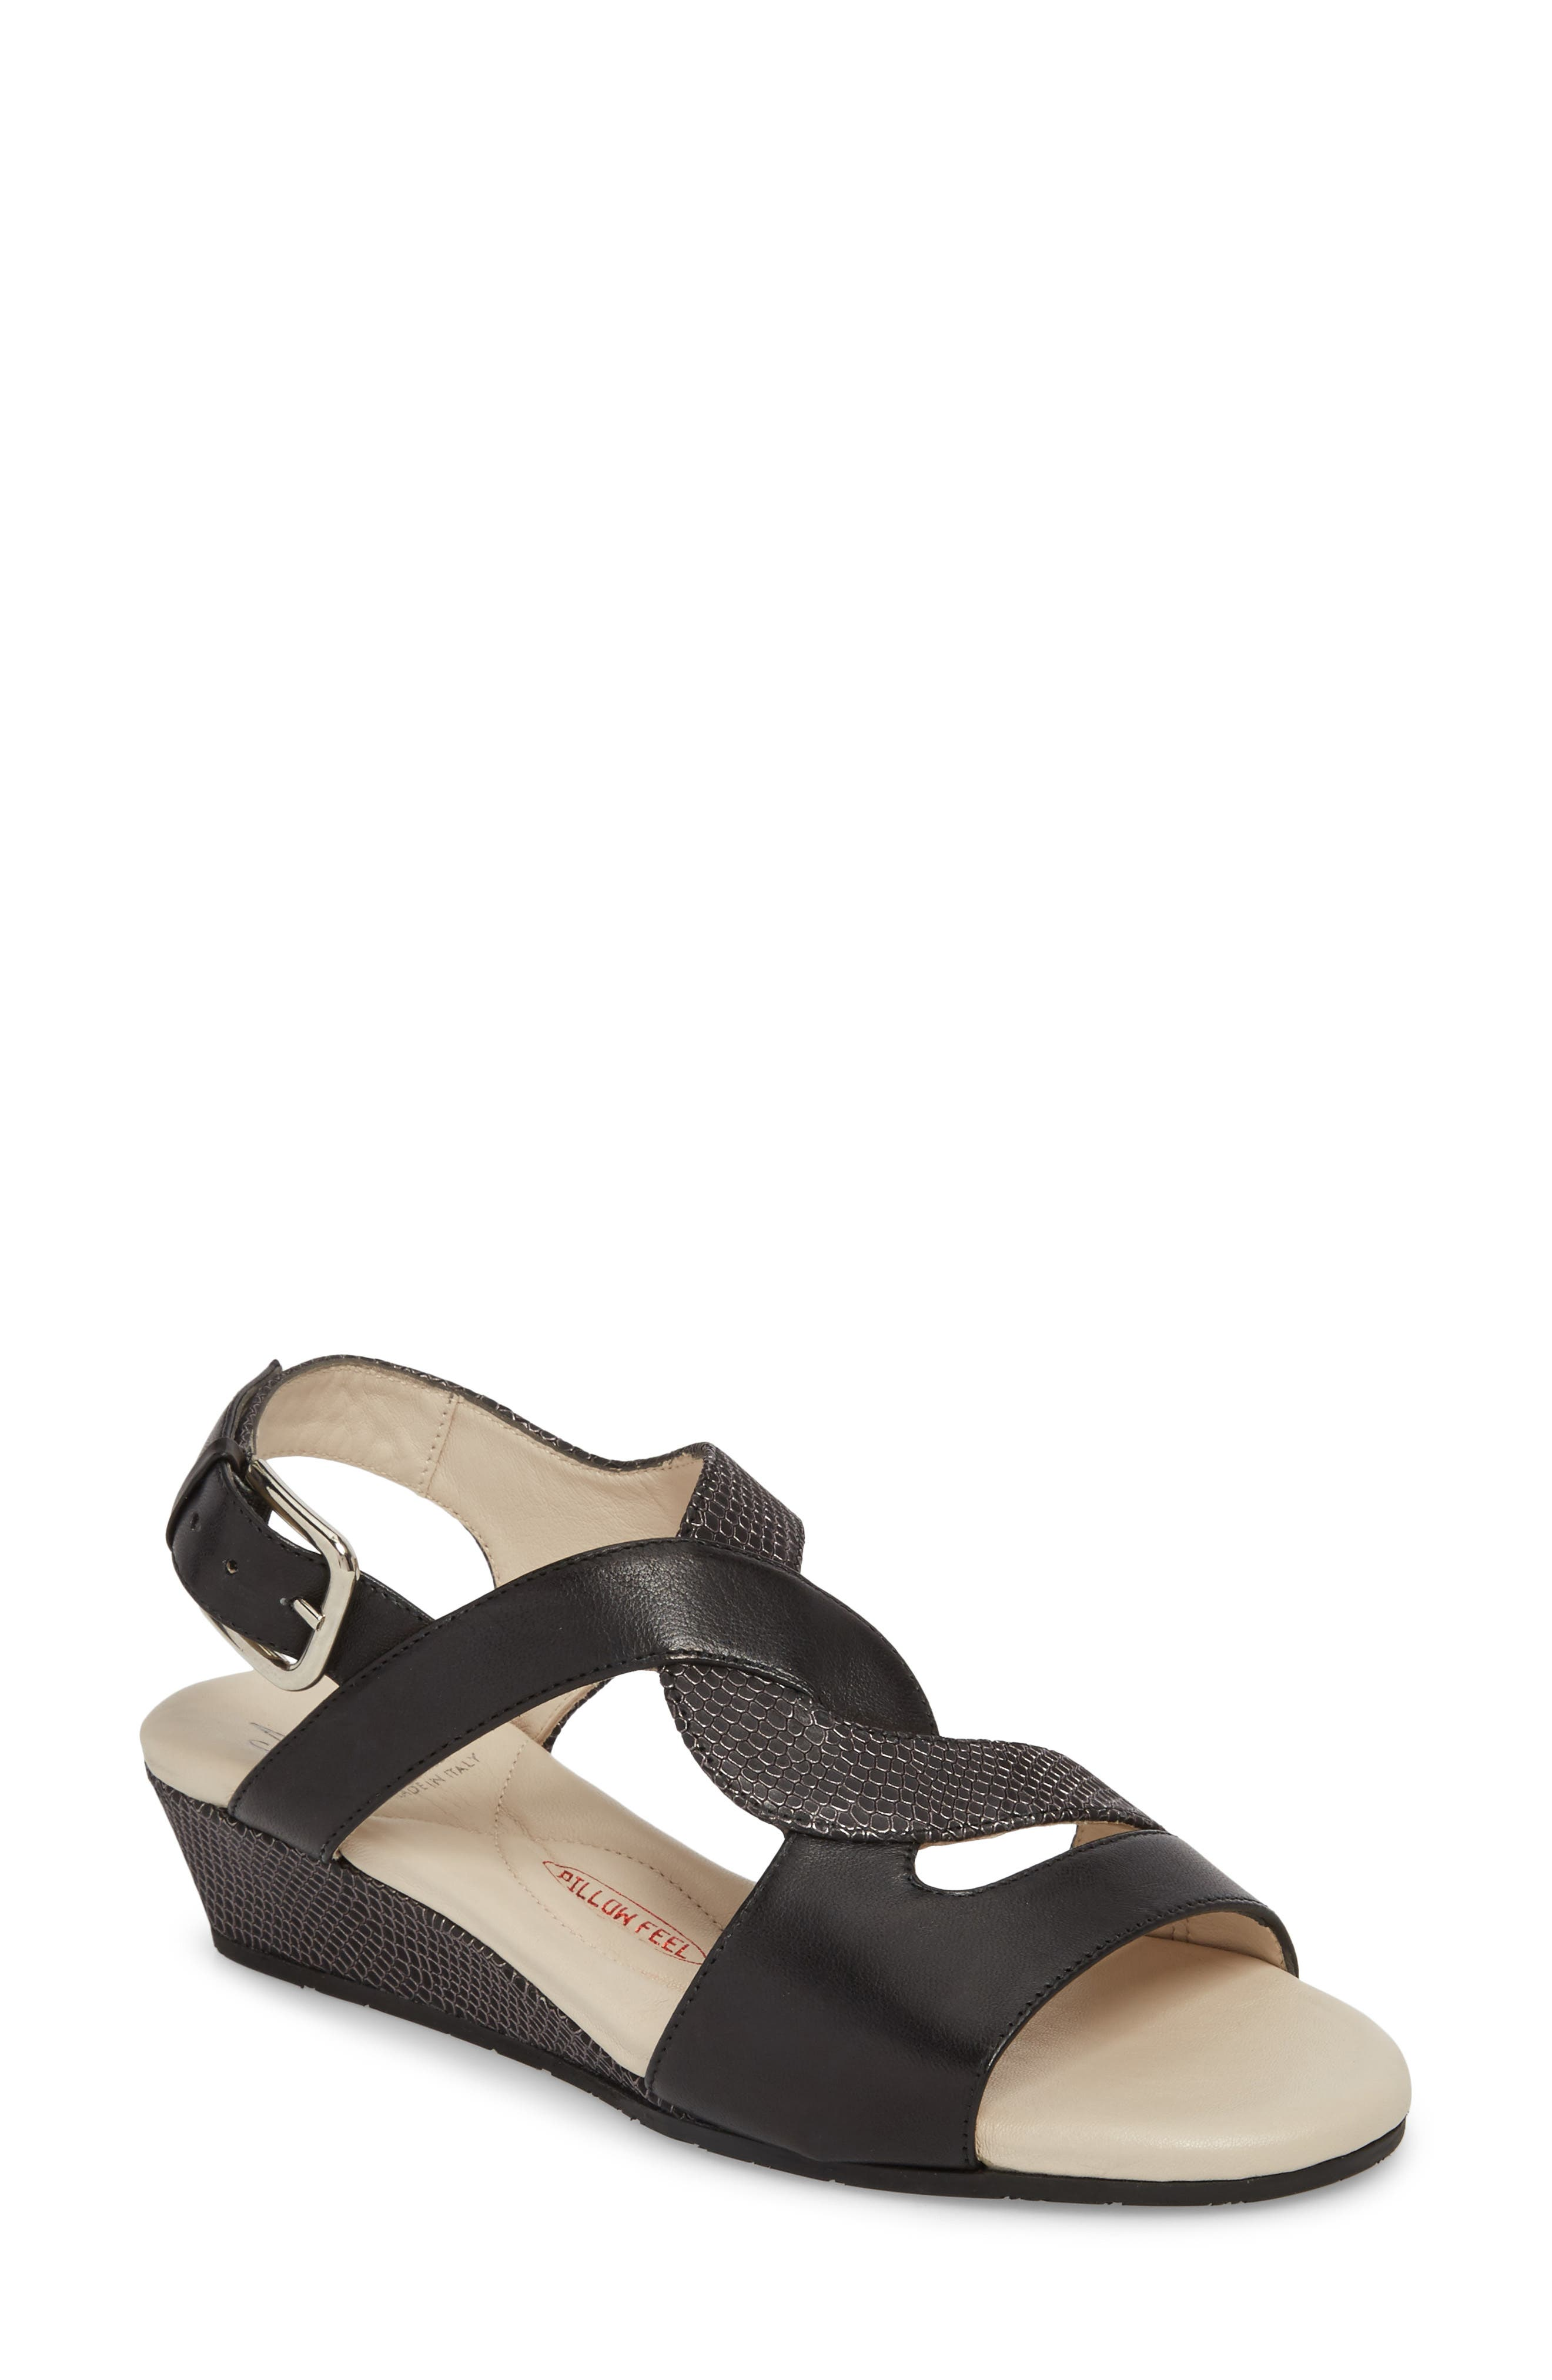 Morosa Wedge Sandal,                         Main,                         color, GRAPHITE LEATHER